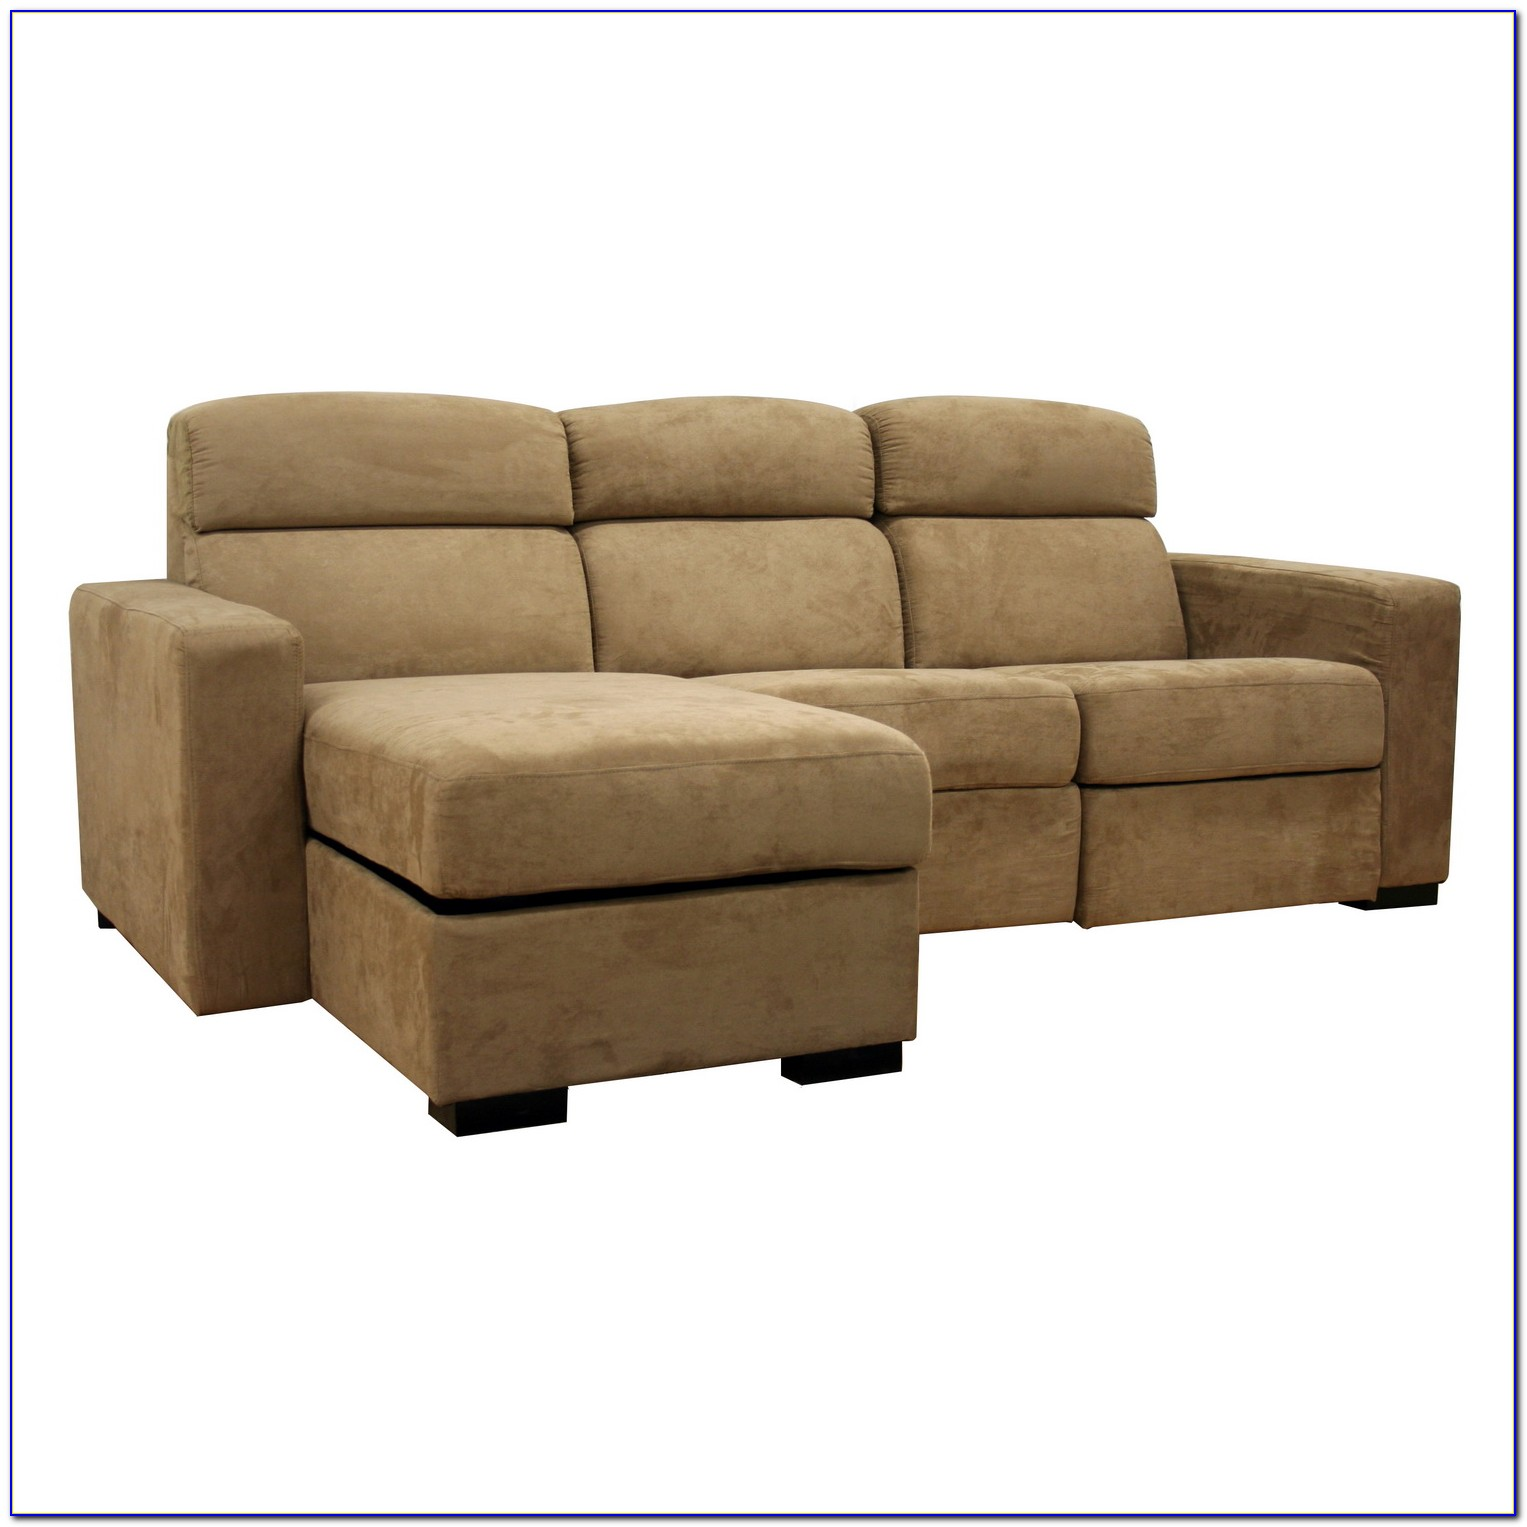 Sofa Sleeper With Chaise Bed